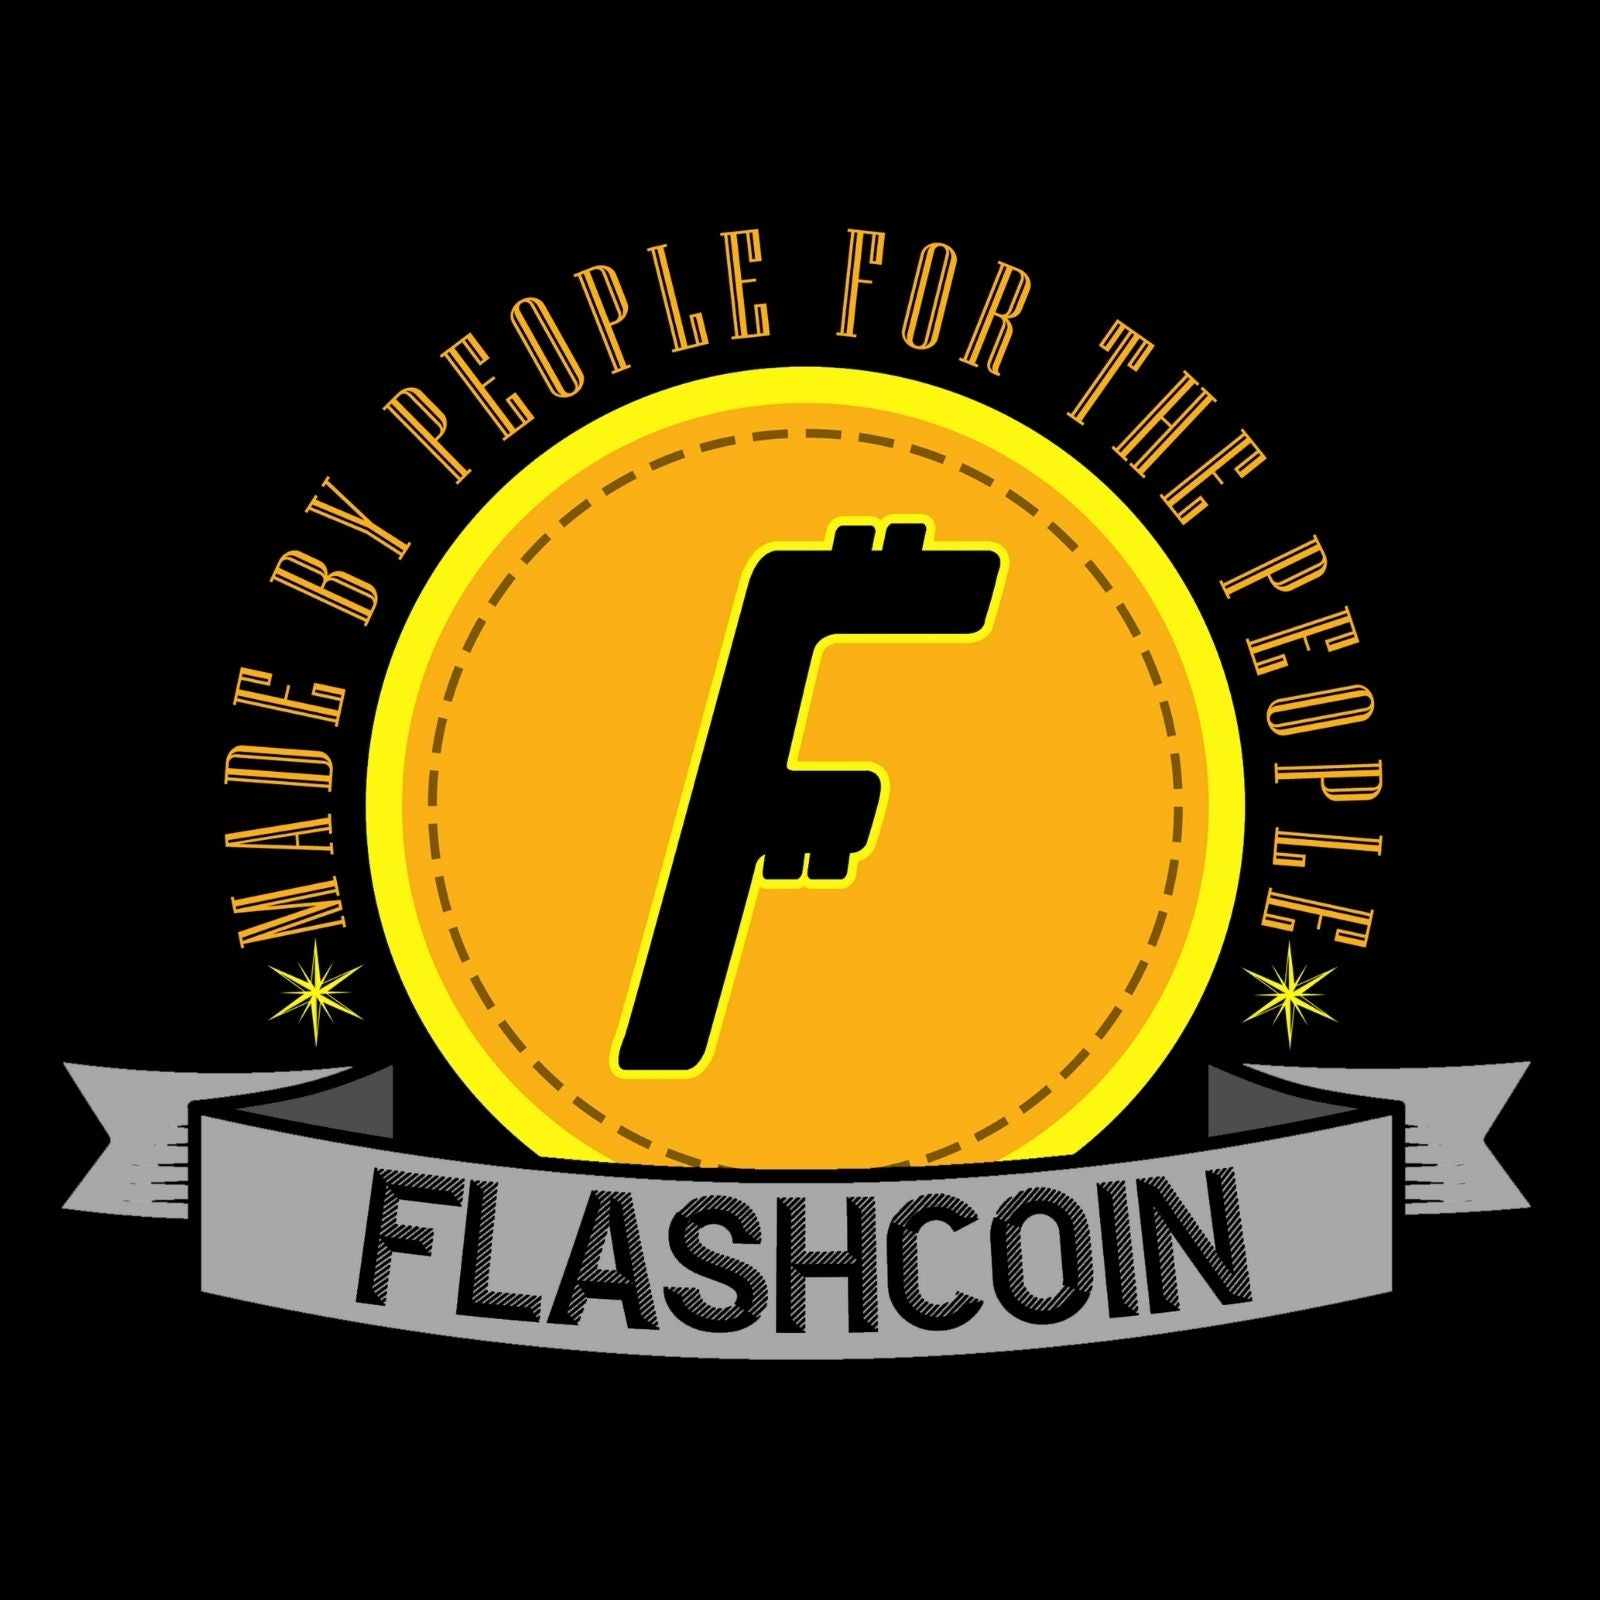 Flashcoin Made By People For The People - Bastard Graphics